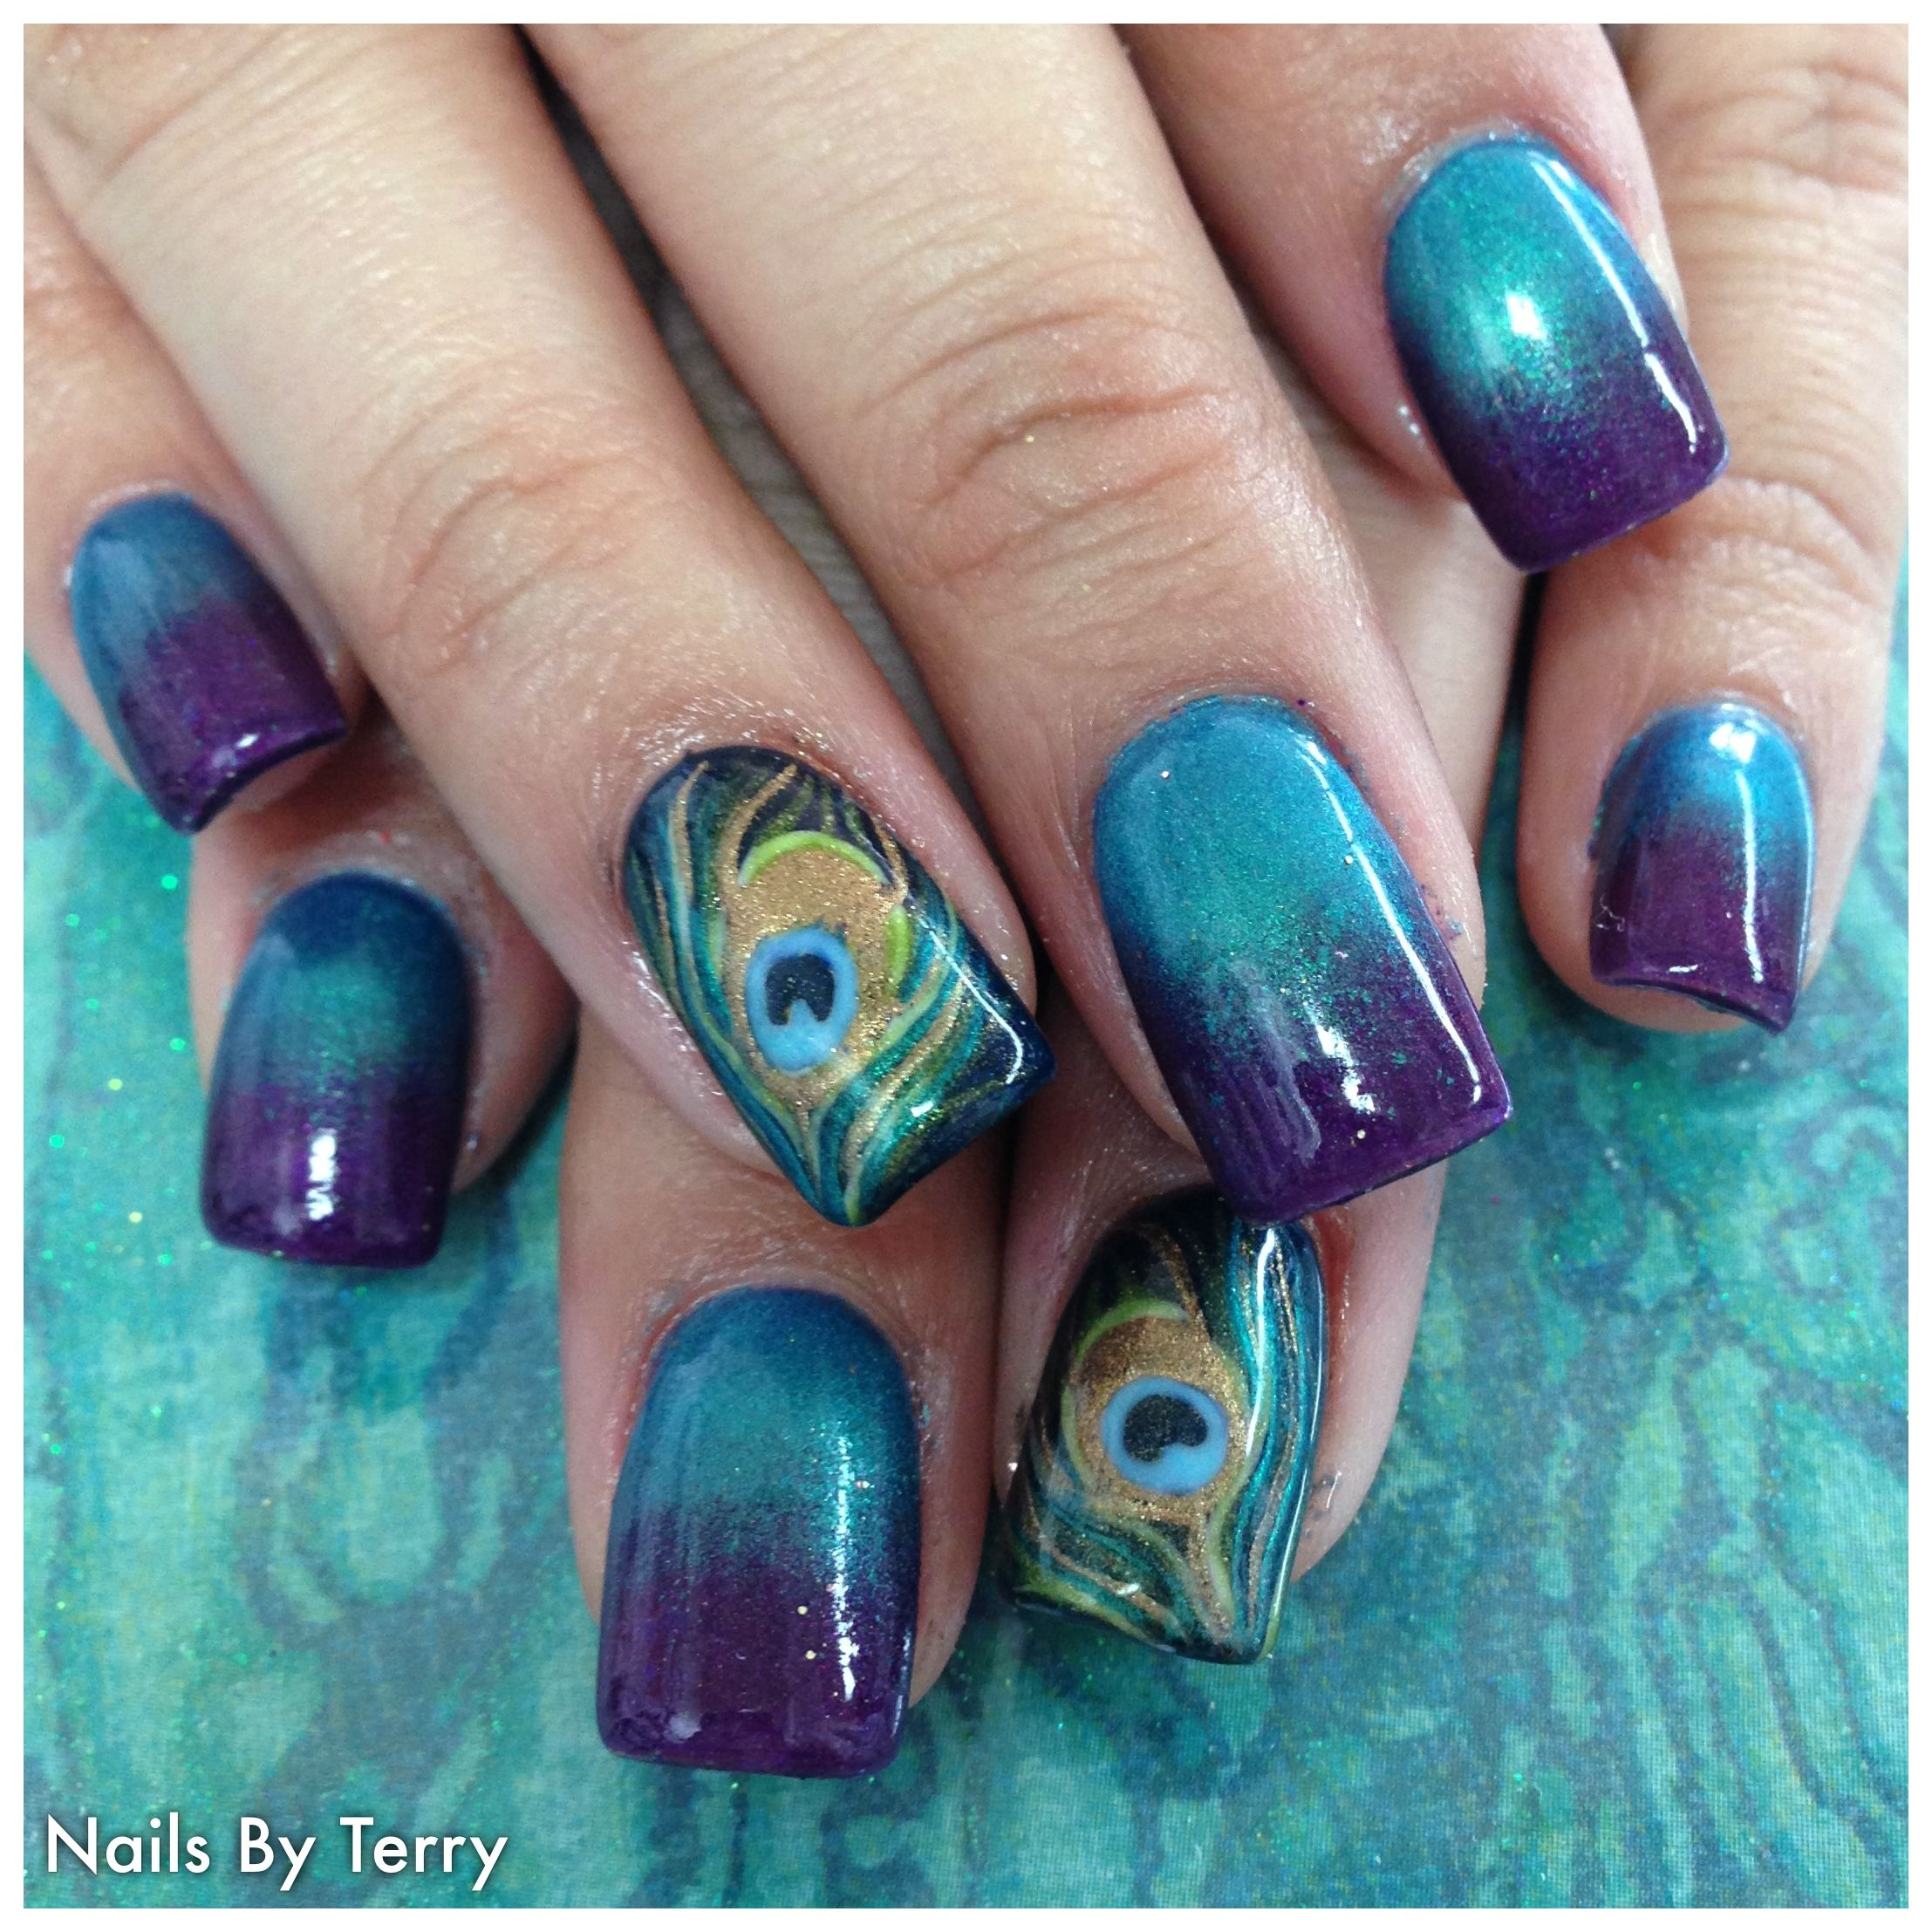 Bridal Gel Nail Polish: Peacock Feather Gel Nails By Terry